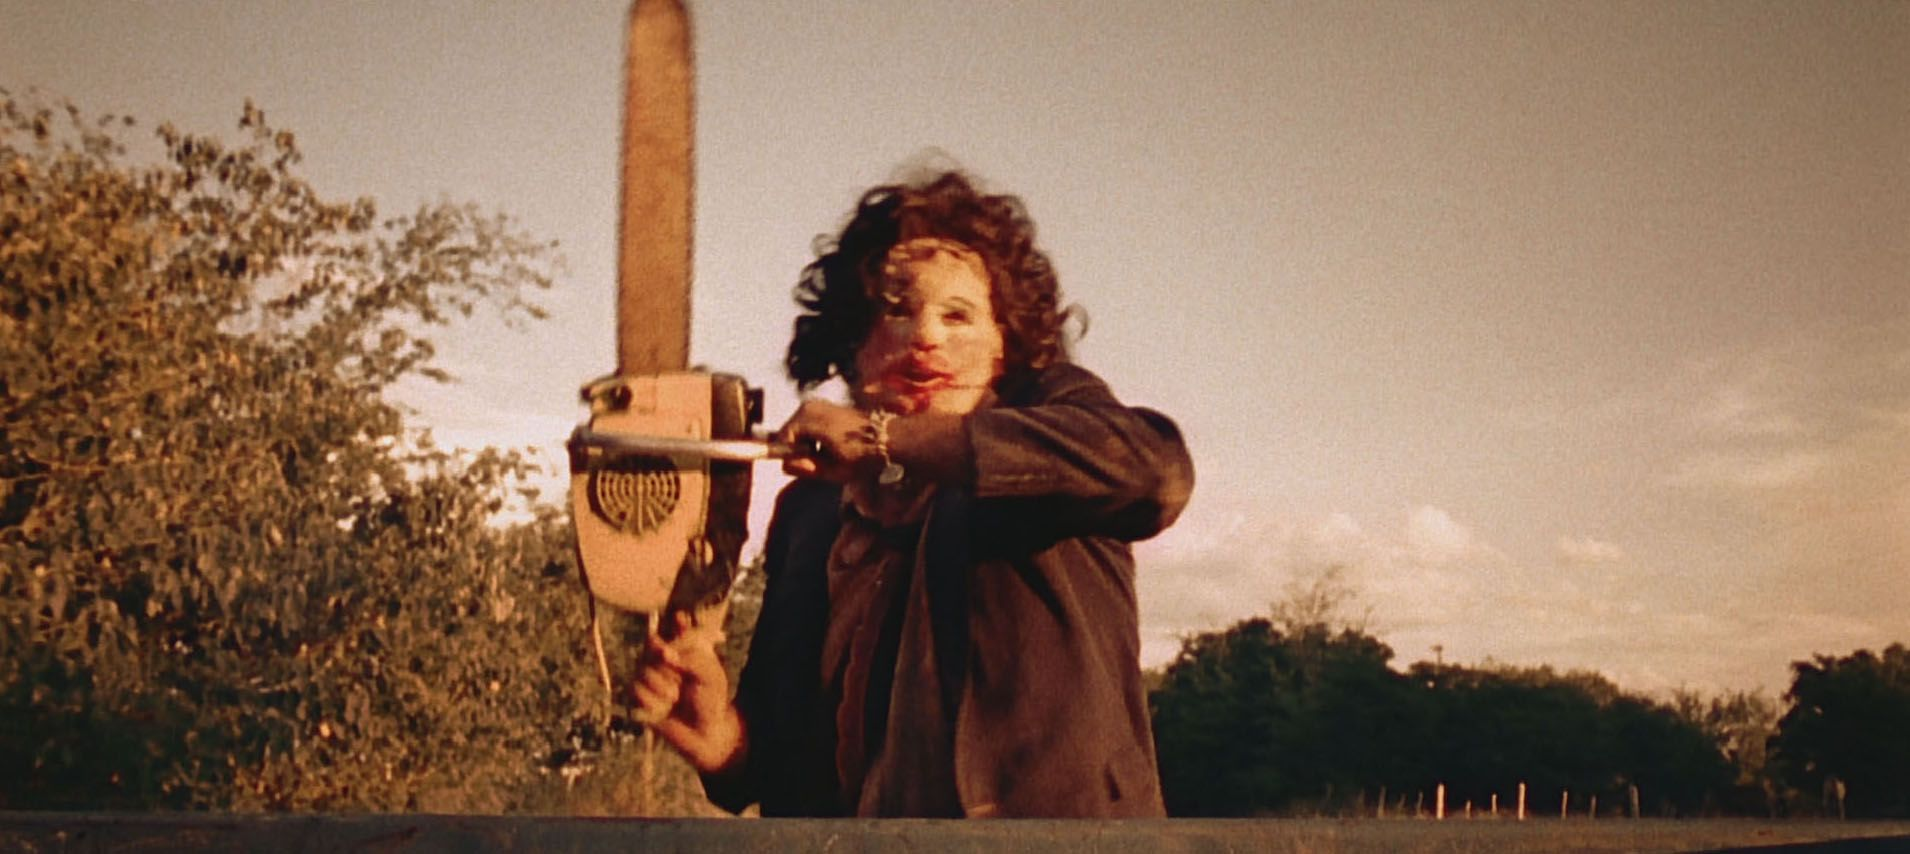 An image from The Texas Chainsaw Massacre